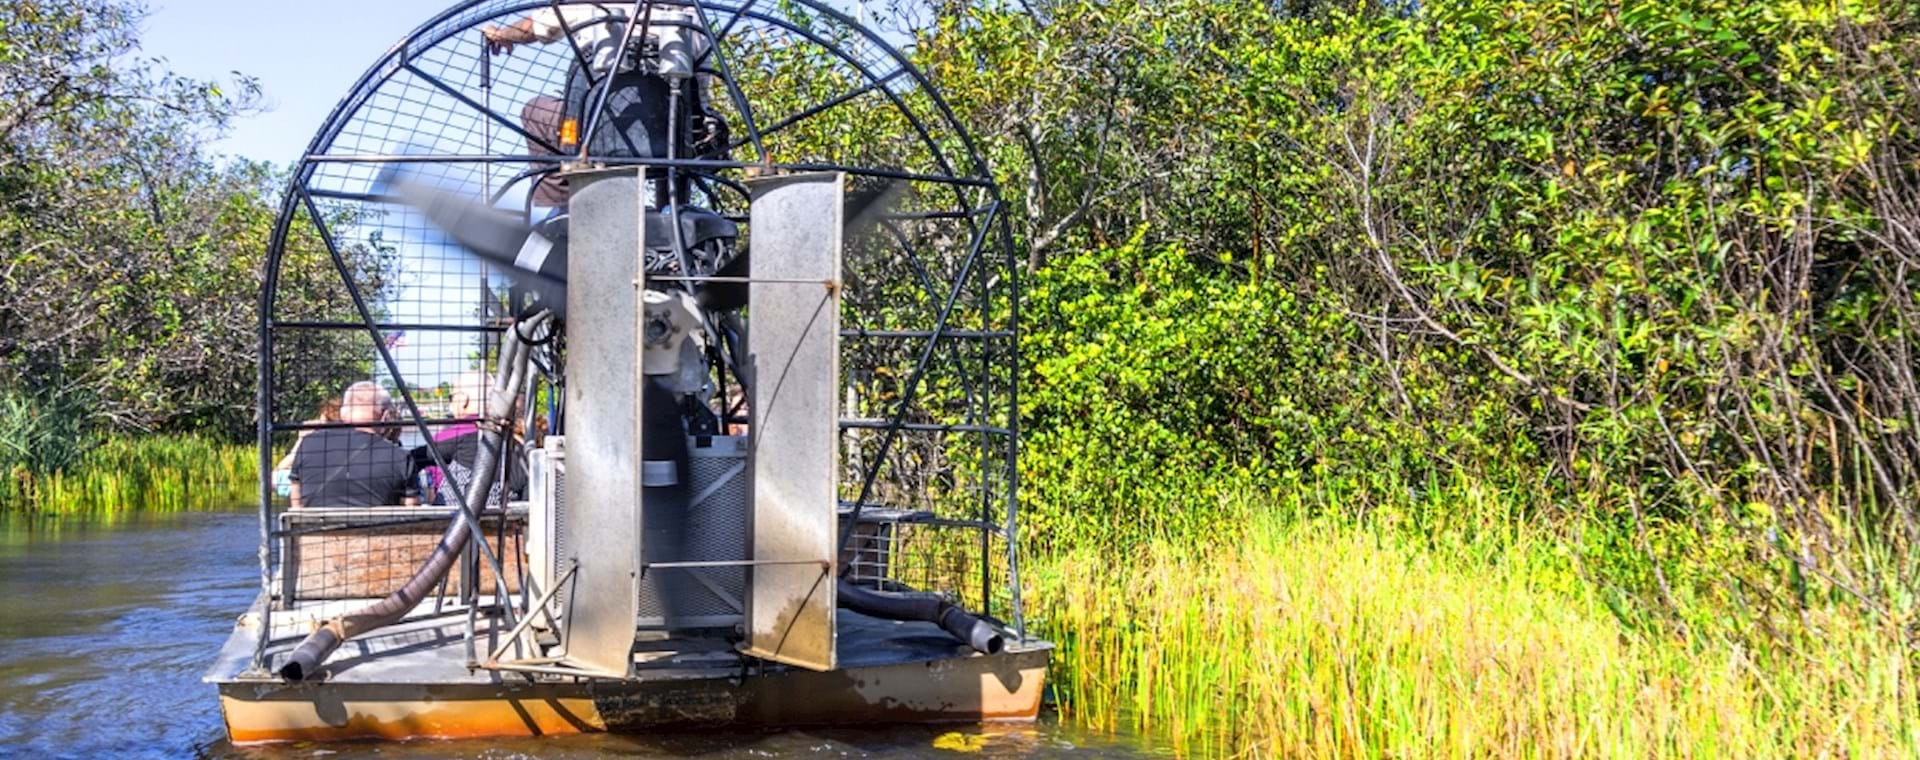 Airboat along the wetland in Everglades